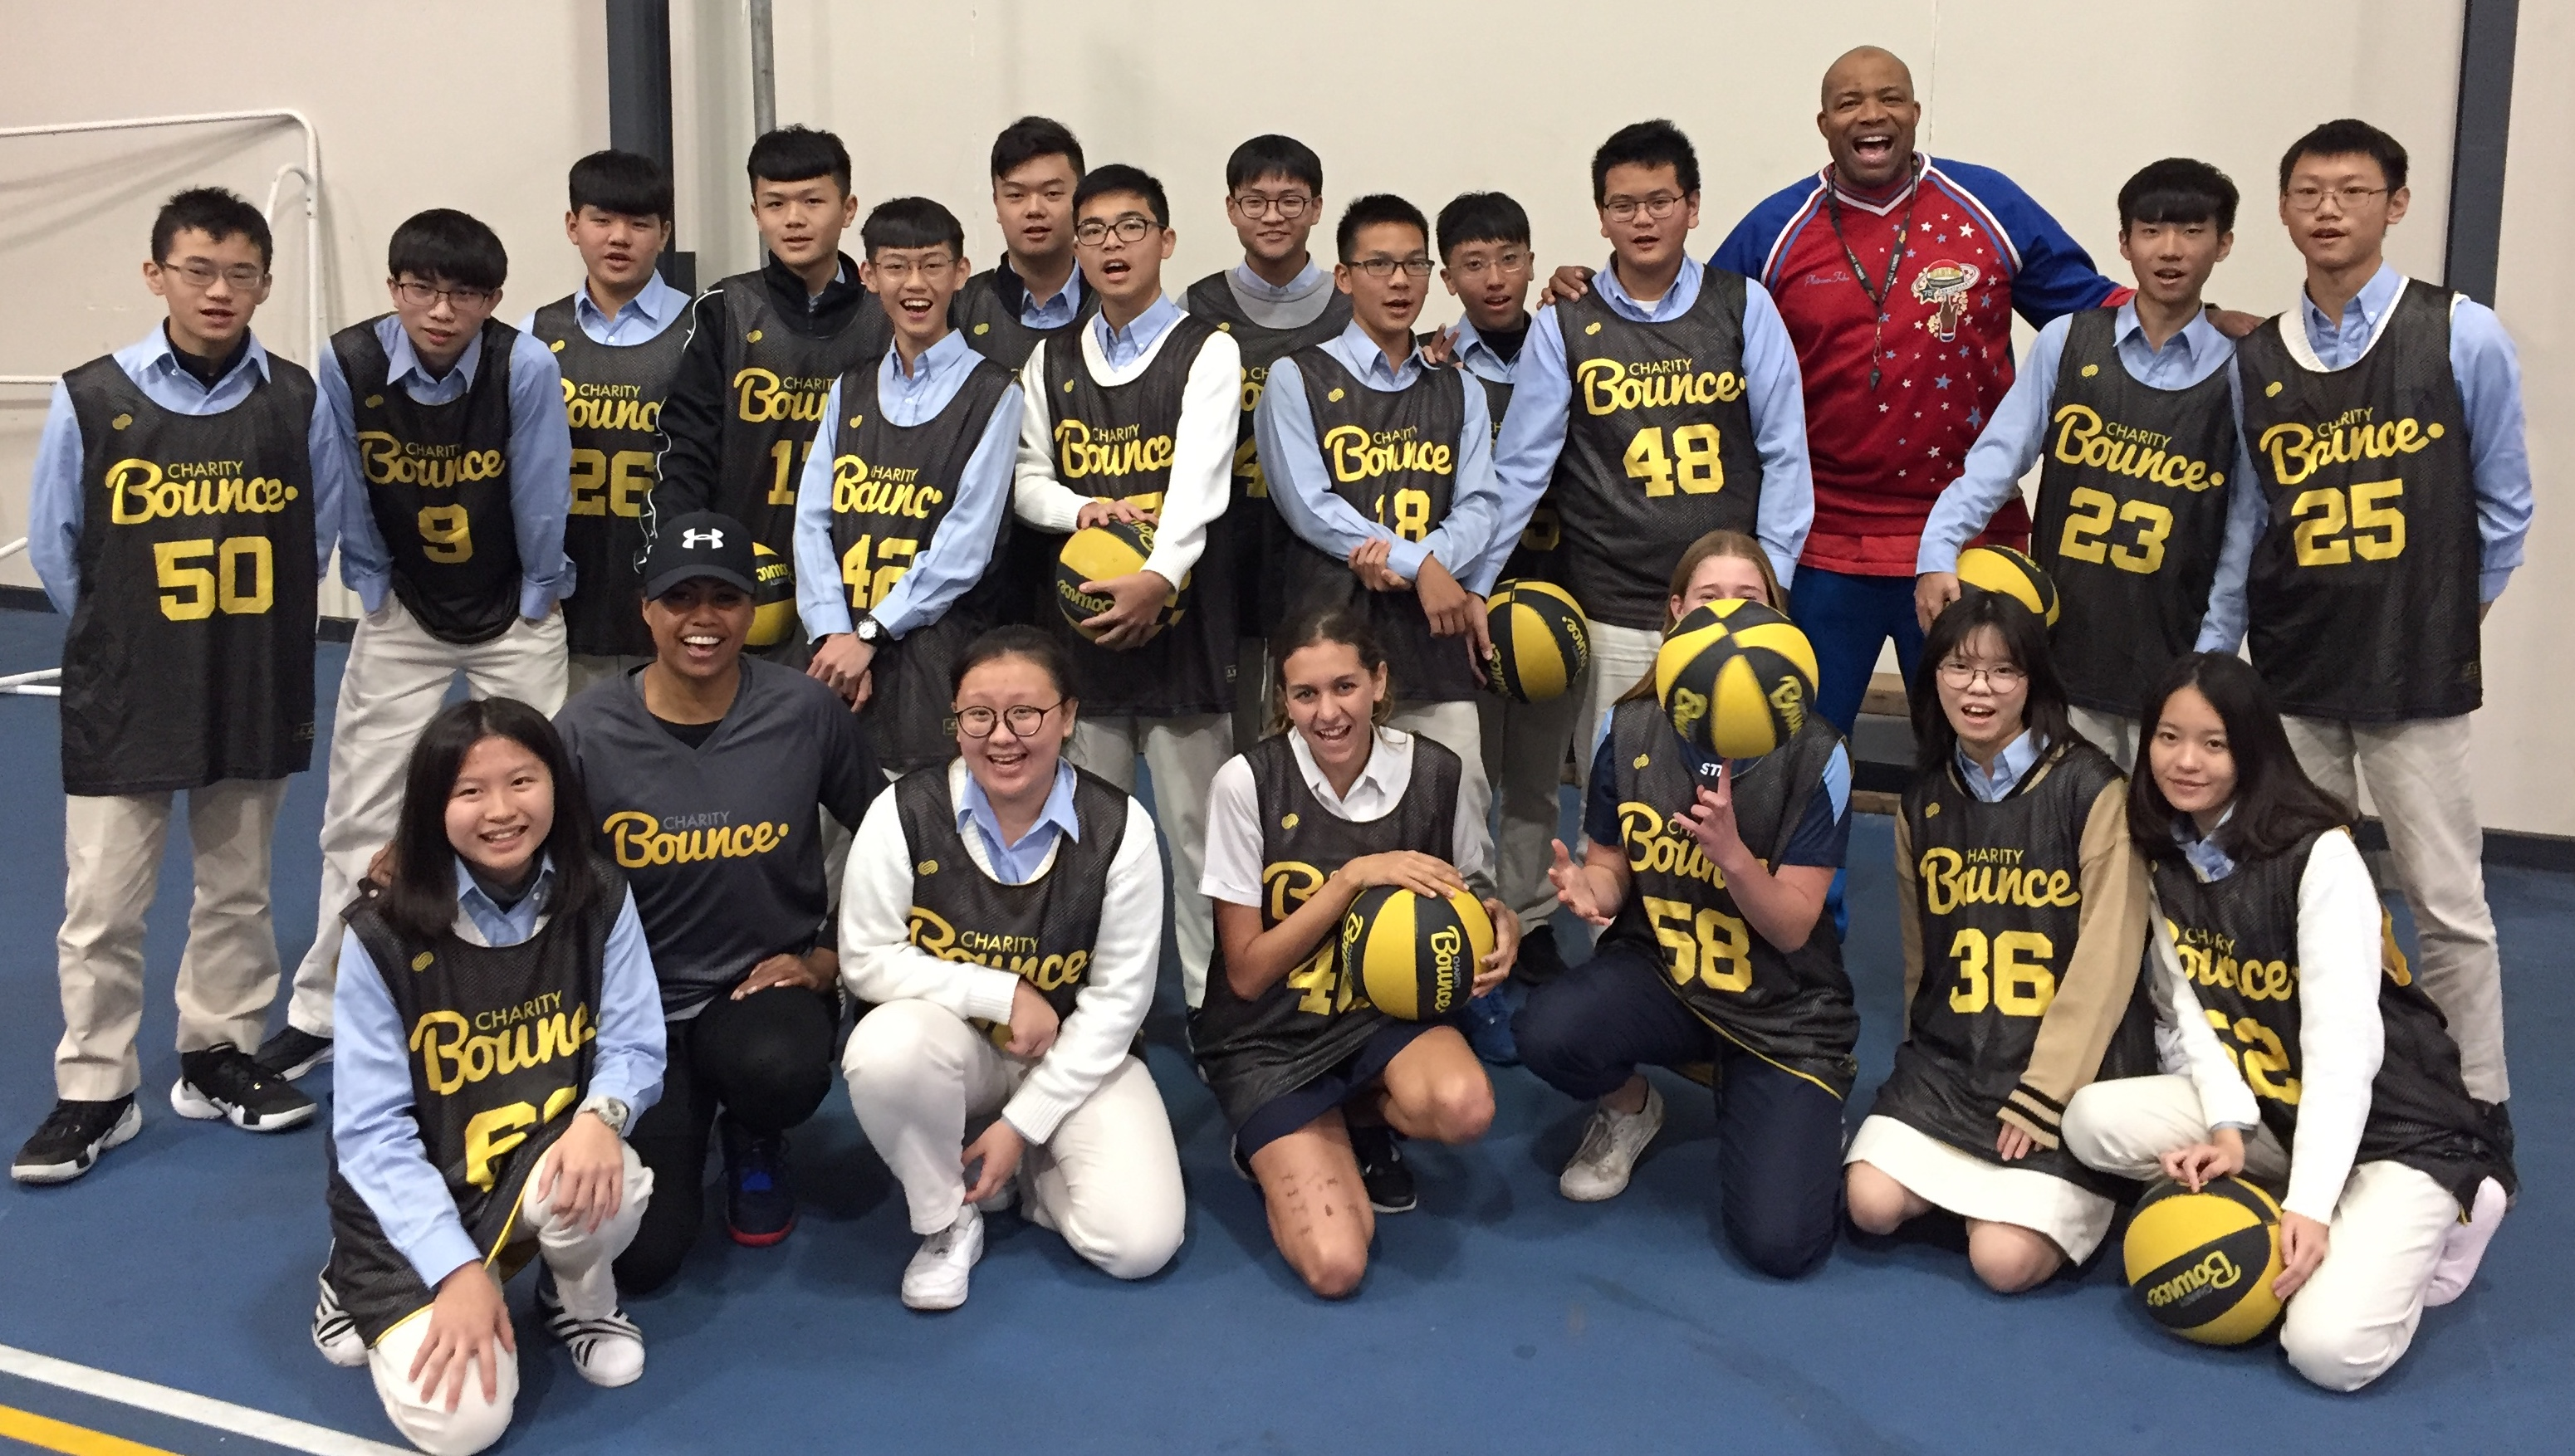 Charity Bounce delivered a Stand Tall program with Washington High School from Taiwan.